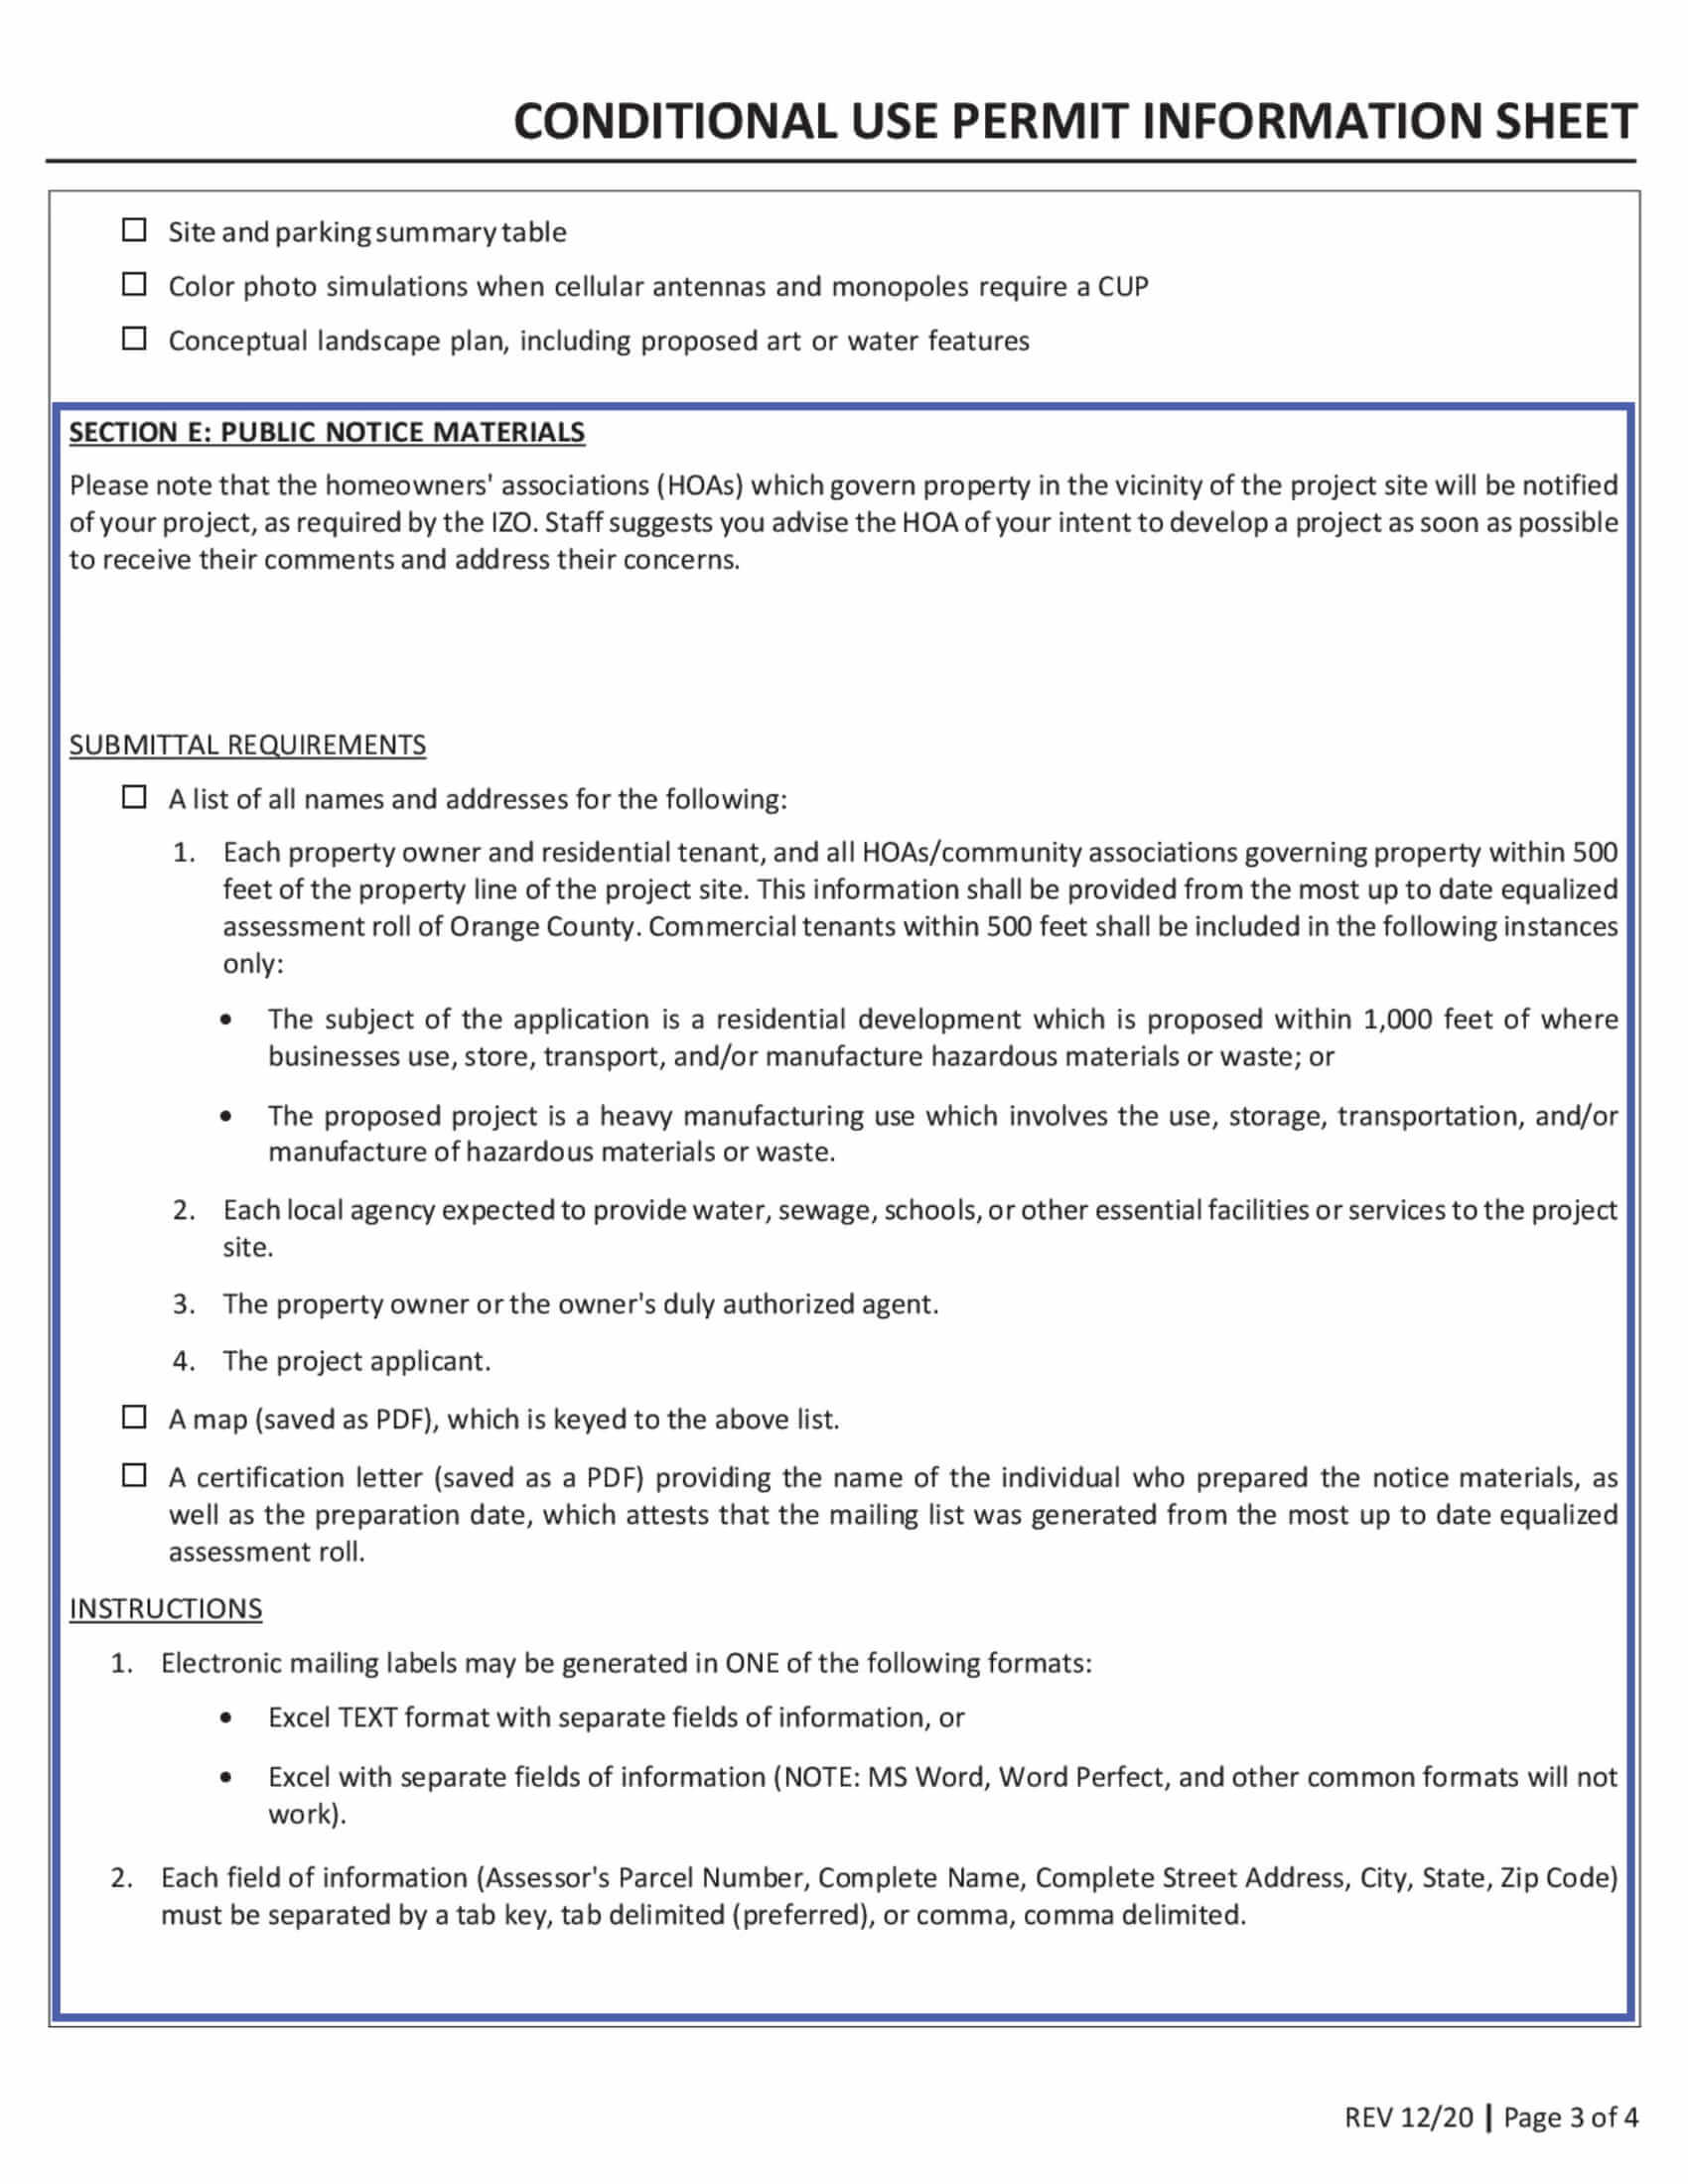 Irvine Conditional Use Permit Information Sheet Public Notice Materials